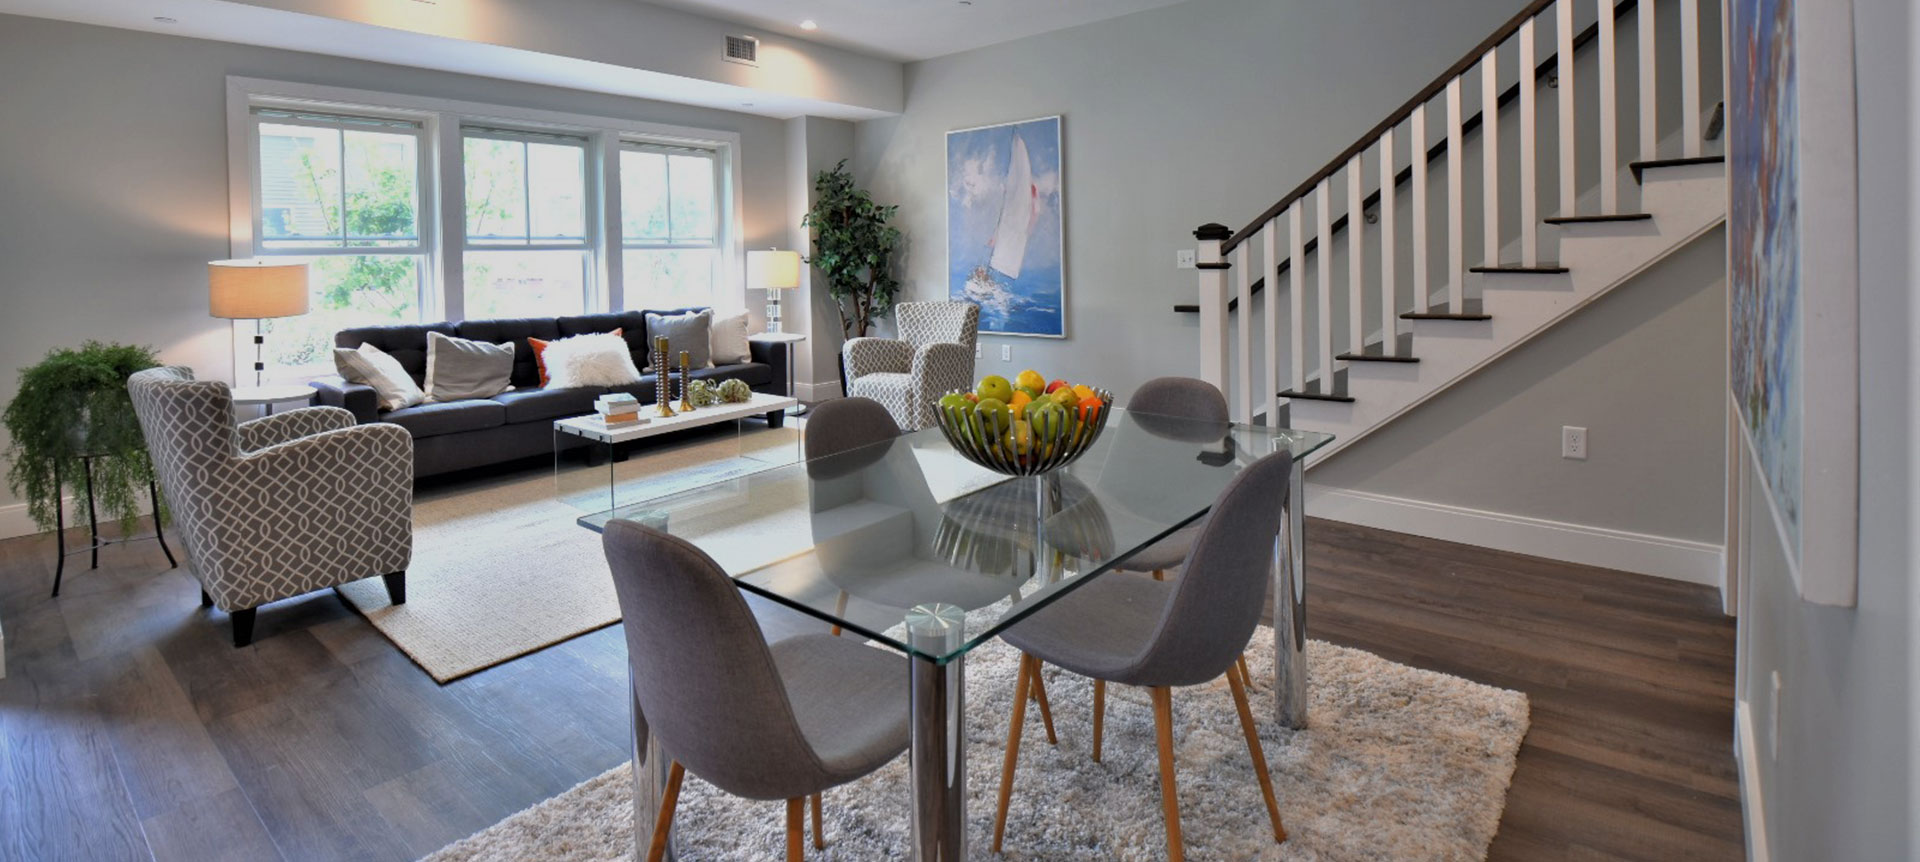 The Apartments at Masse Corner Open Living Space